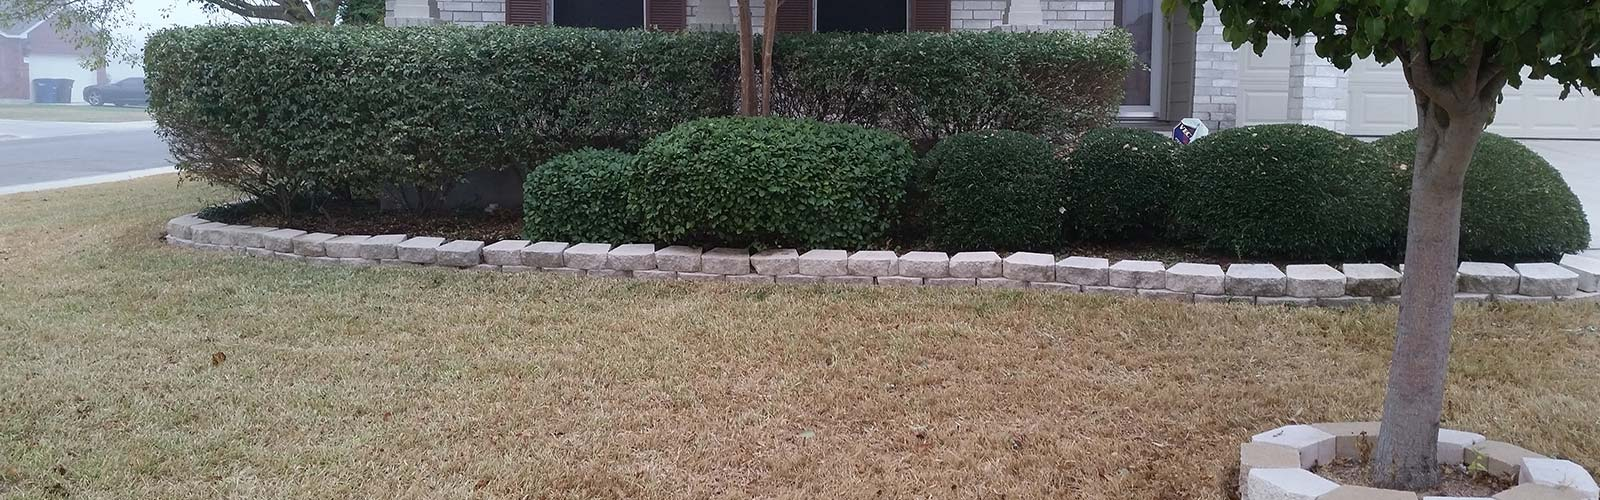 New Braunfels Landscaping Services